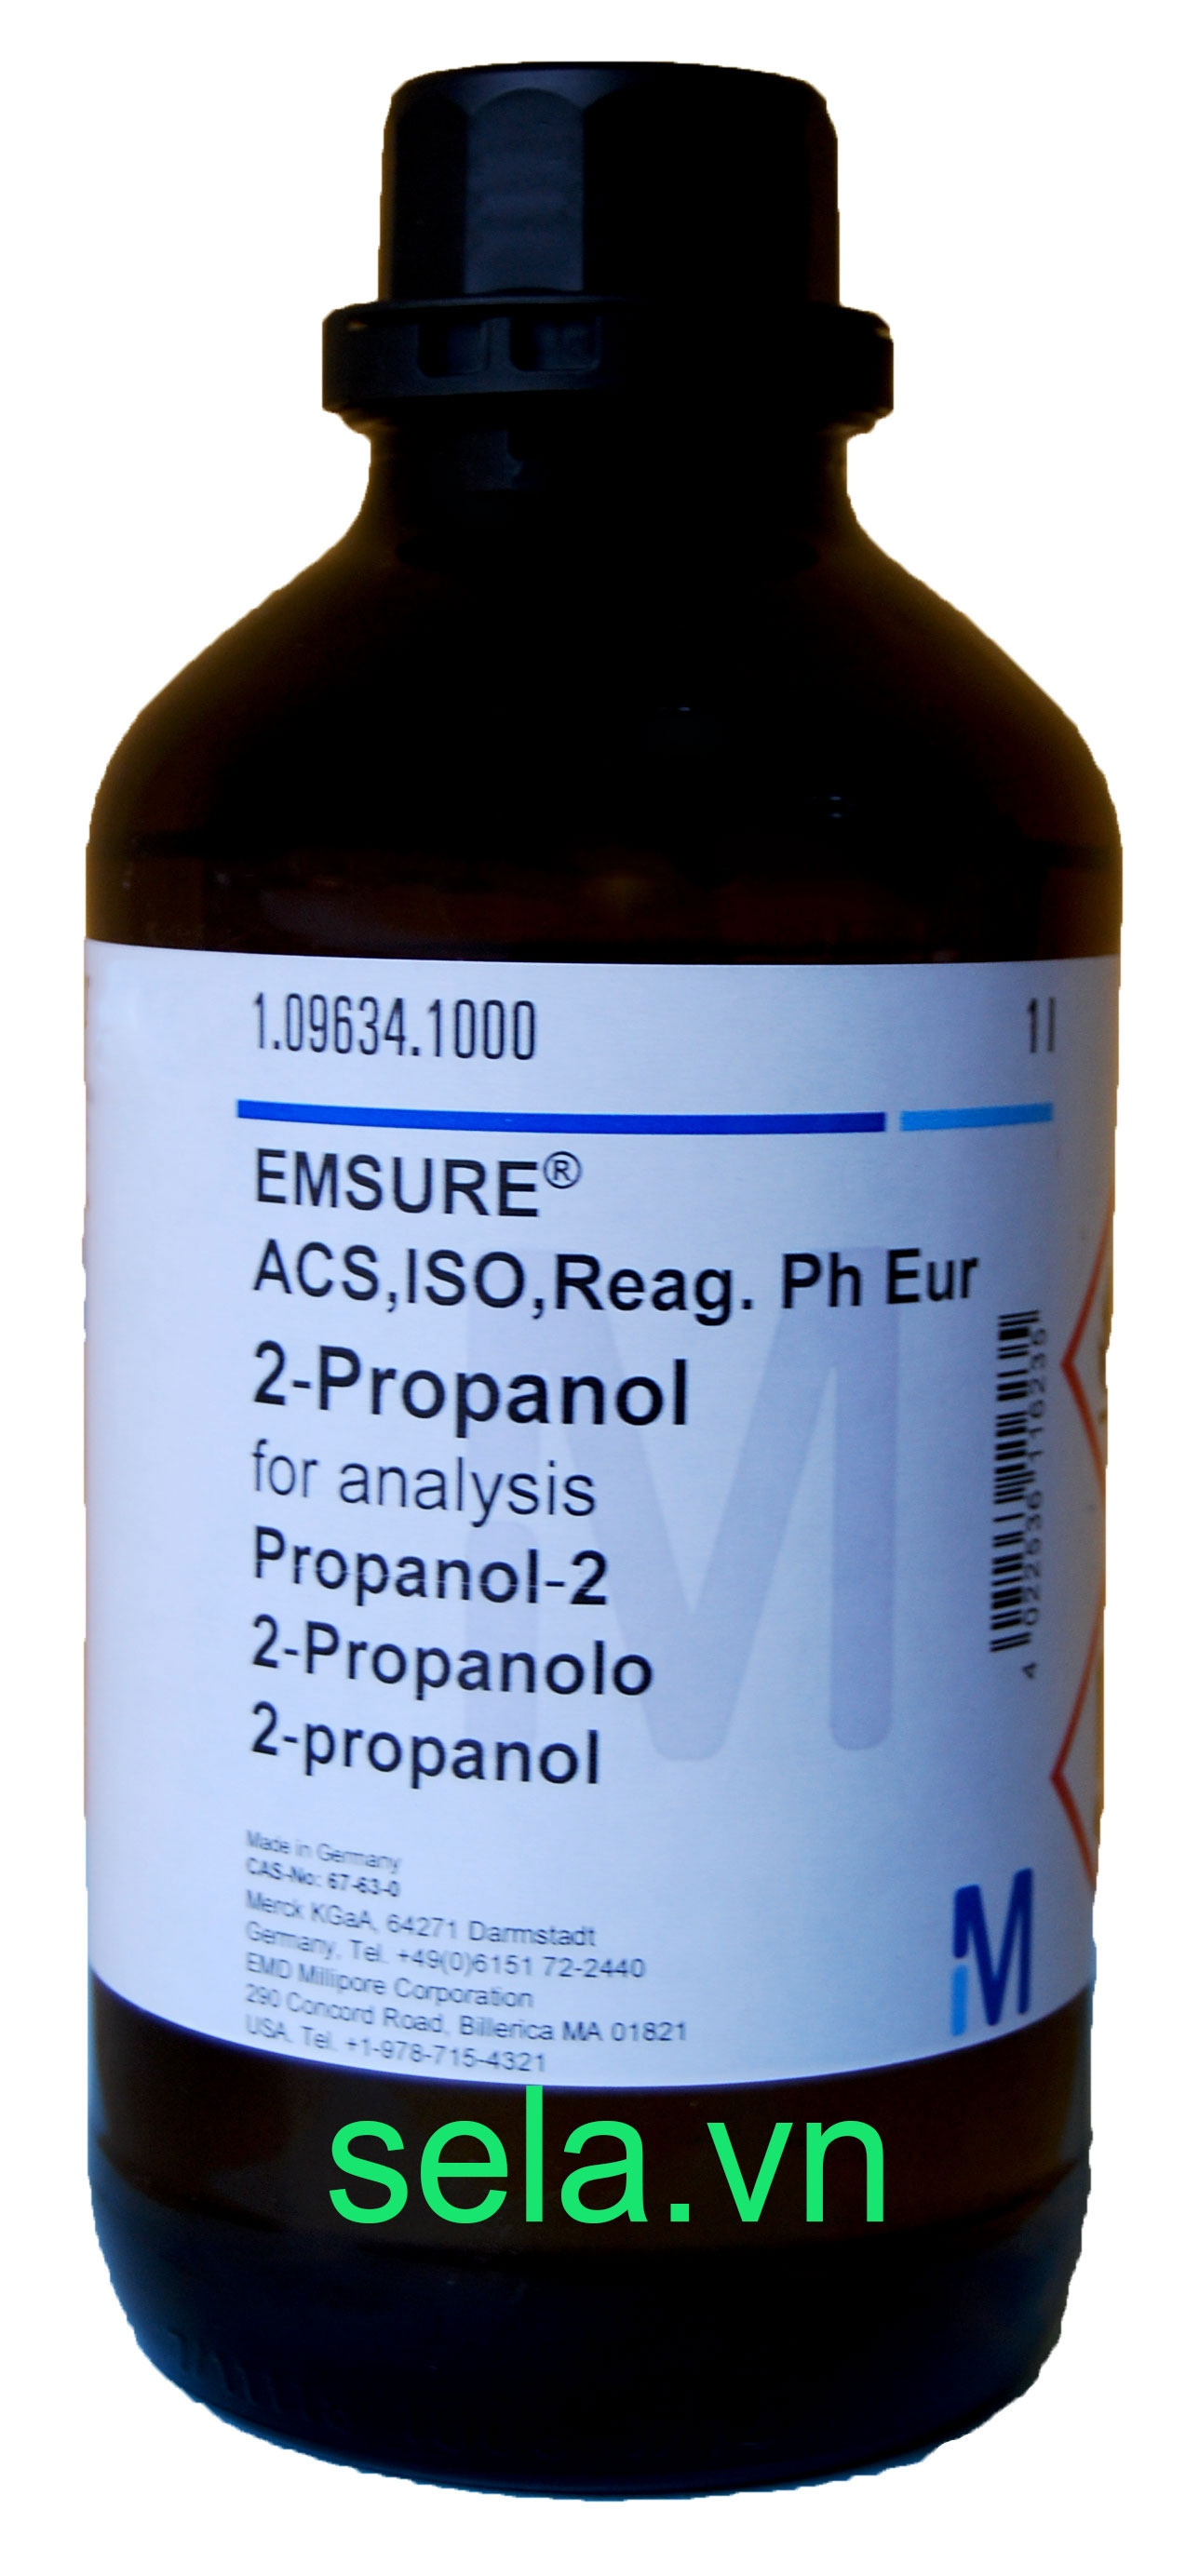 2-Propanol for analysis EMSURE® ACS,ISO,Reag. Ph Eur